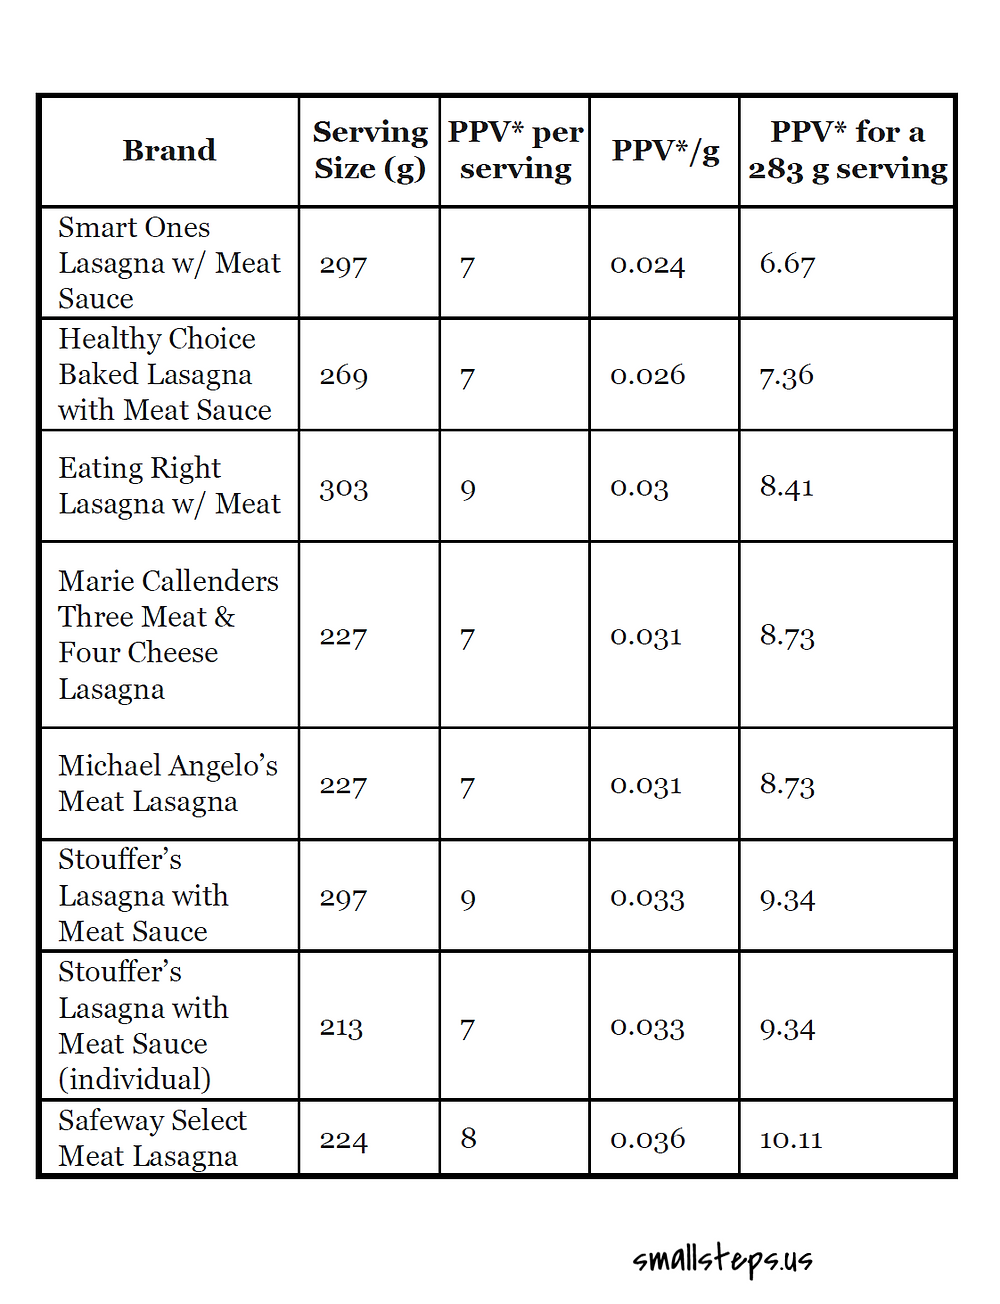 table of PPV for several brands of lasagna